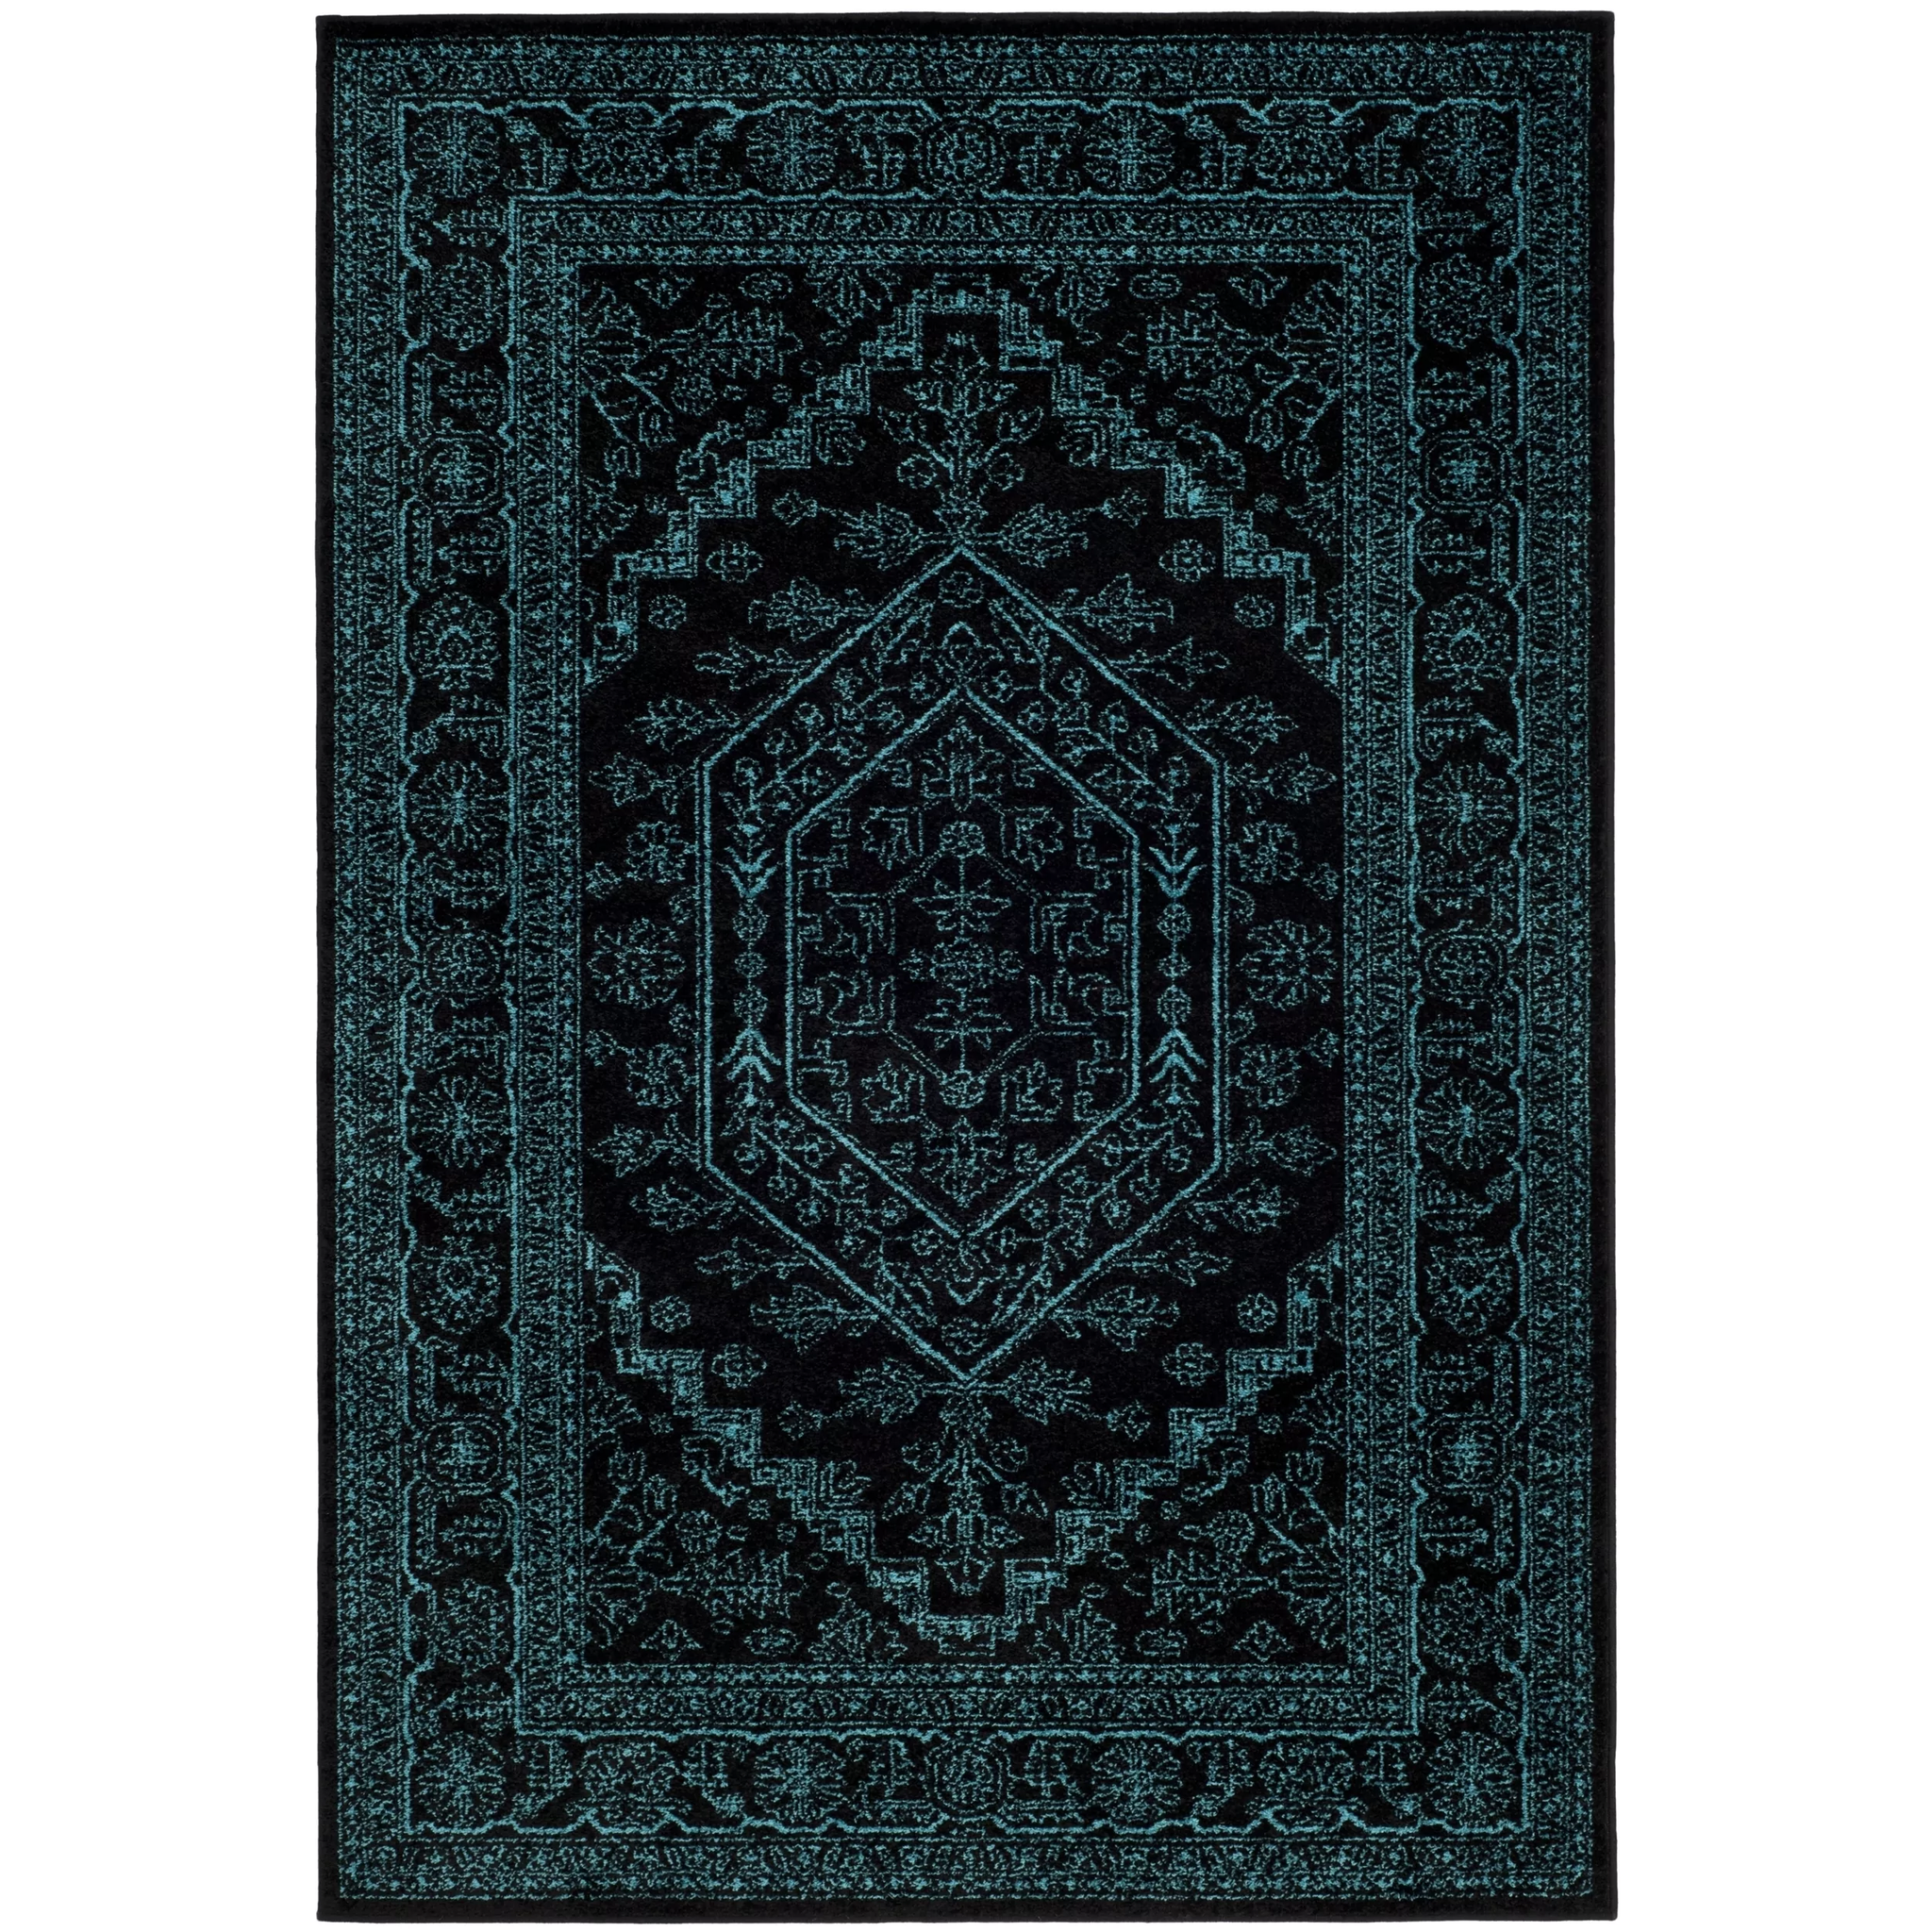 Safavieh Adirondack Collection Black And Teal Oriental Vintage